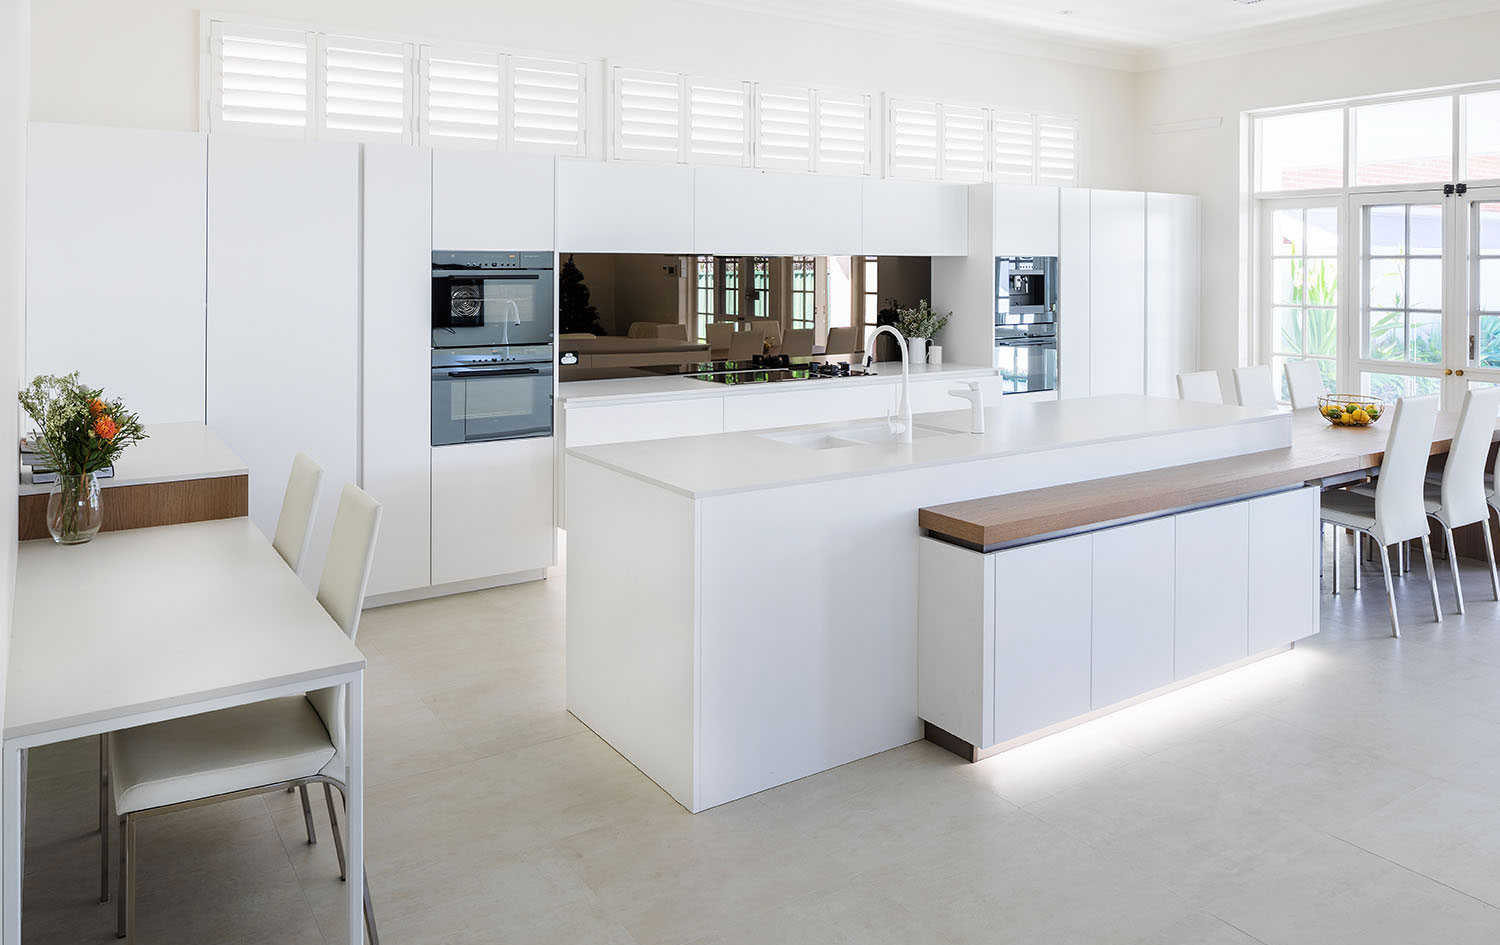 Wonderful Where Modern And Traditional Meet: An Elegant Kitchen Design Part 25